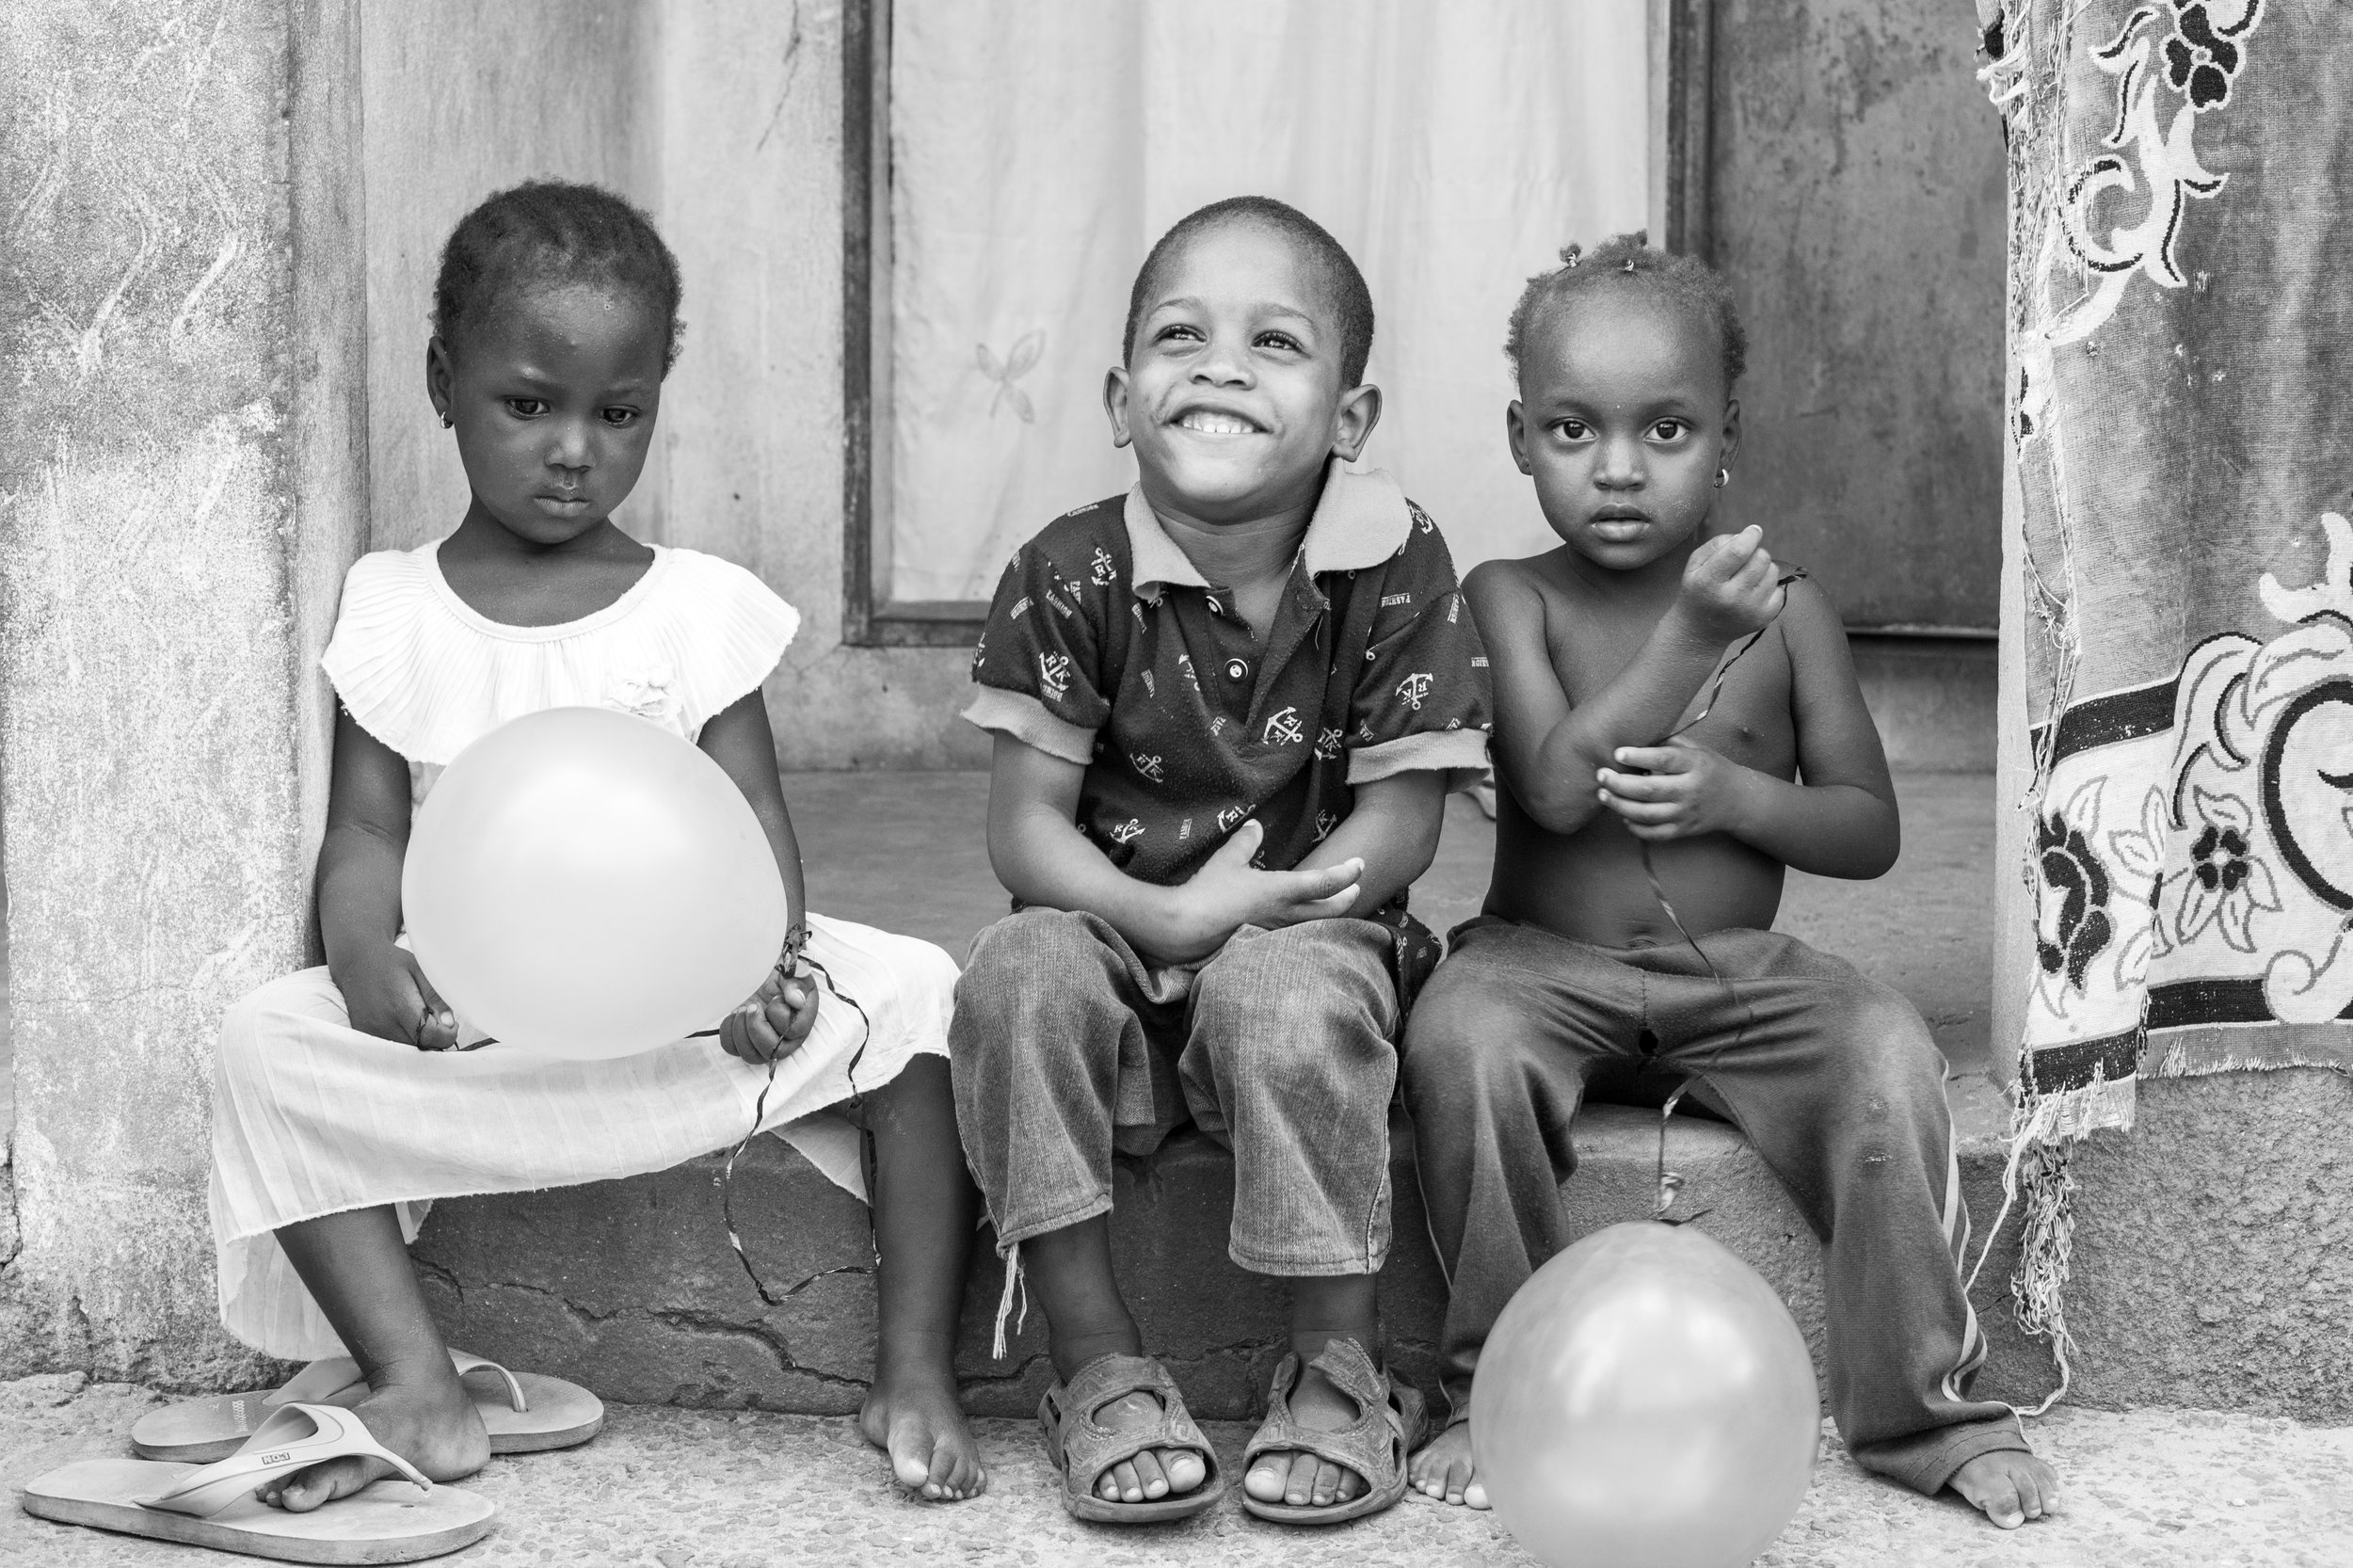 African children playing in the street.